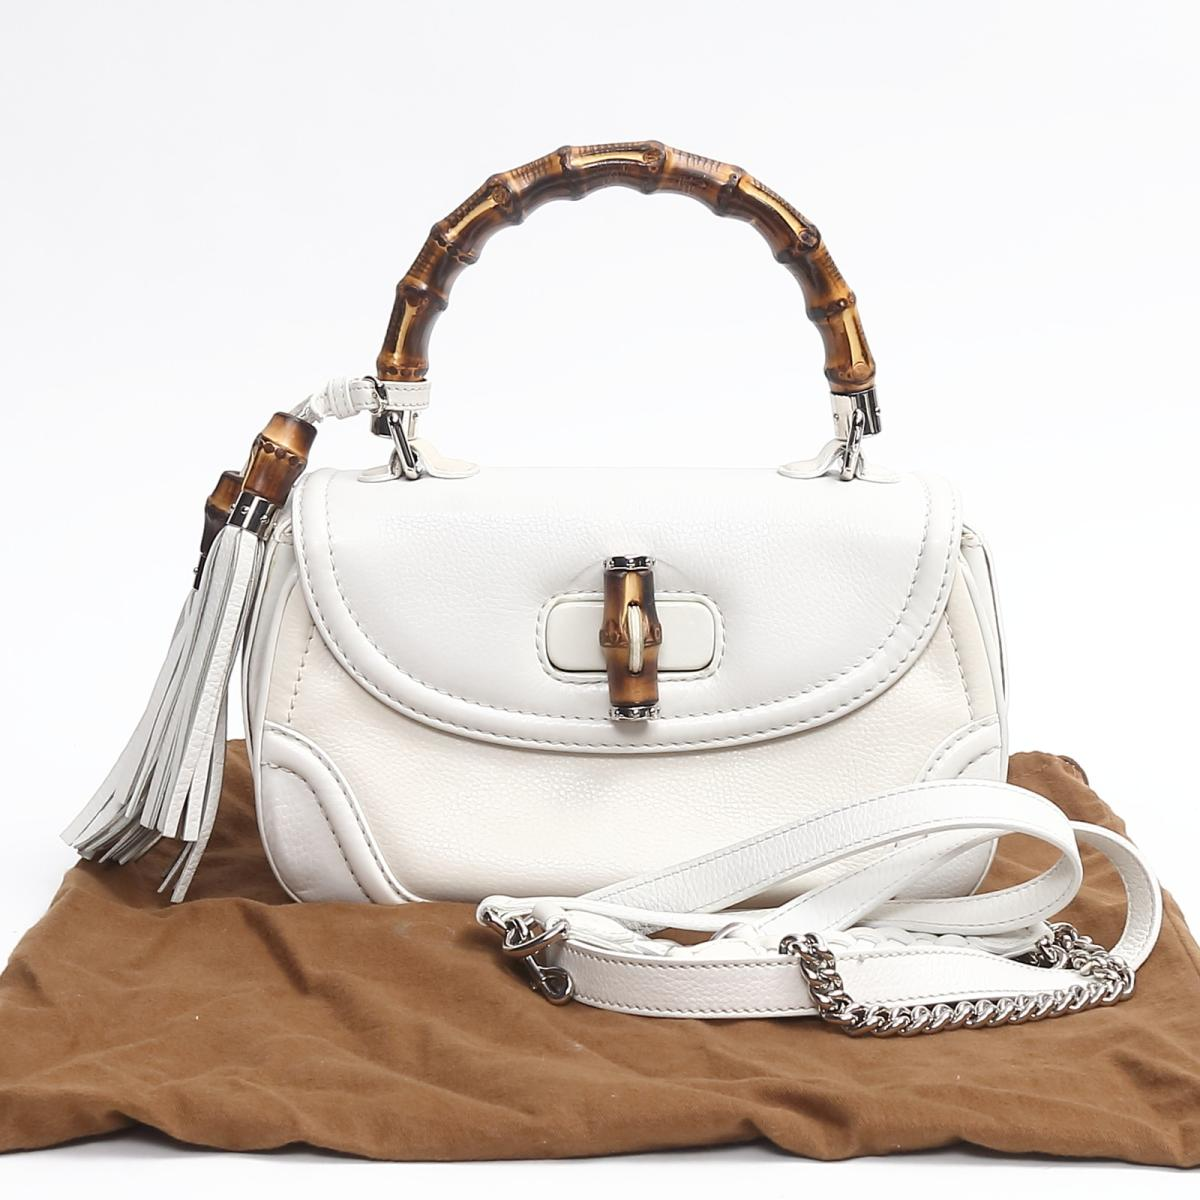 5cdb85cdd42 Auth GUCCI Bamboo 2way shoulder hand bag fringe 240242 leather White Used  Vintage